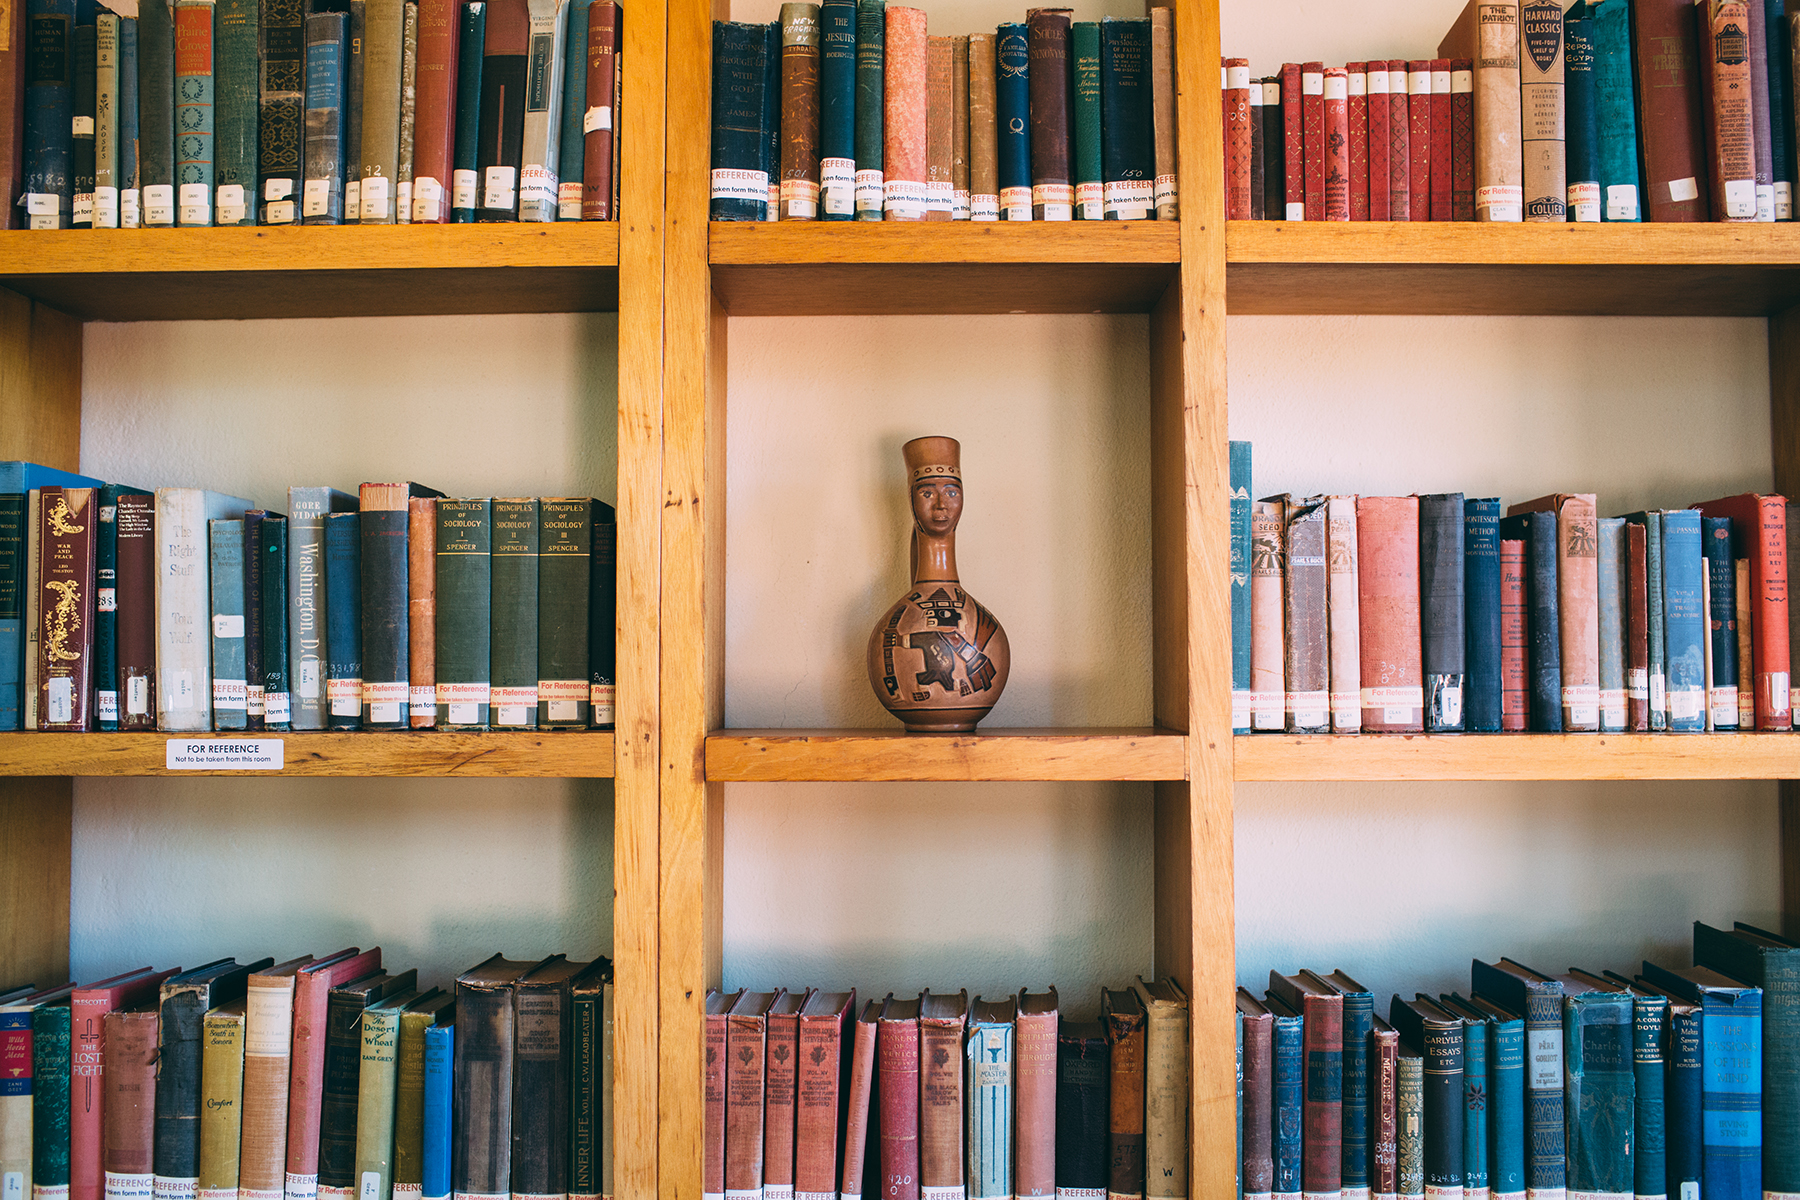 Looking for Erica in the Rare Books Room by Jill Bronfman